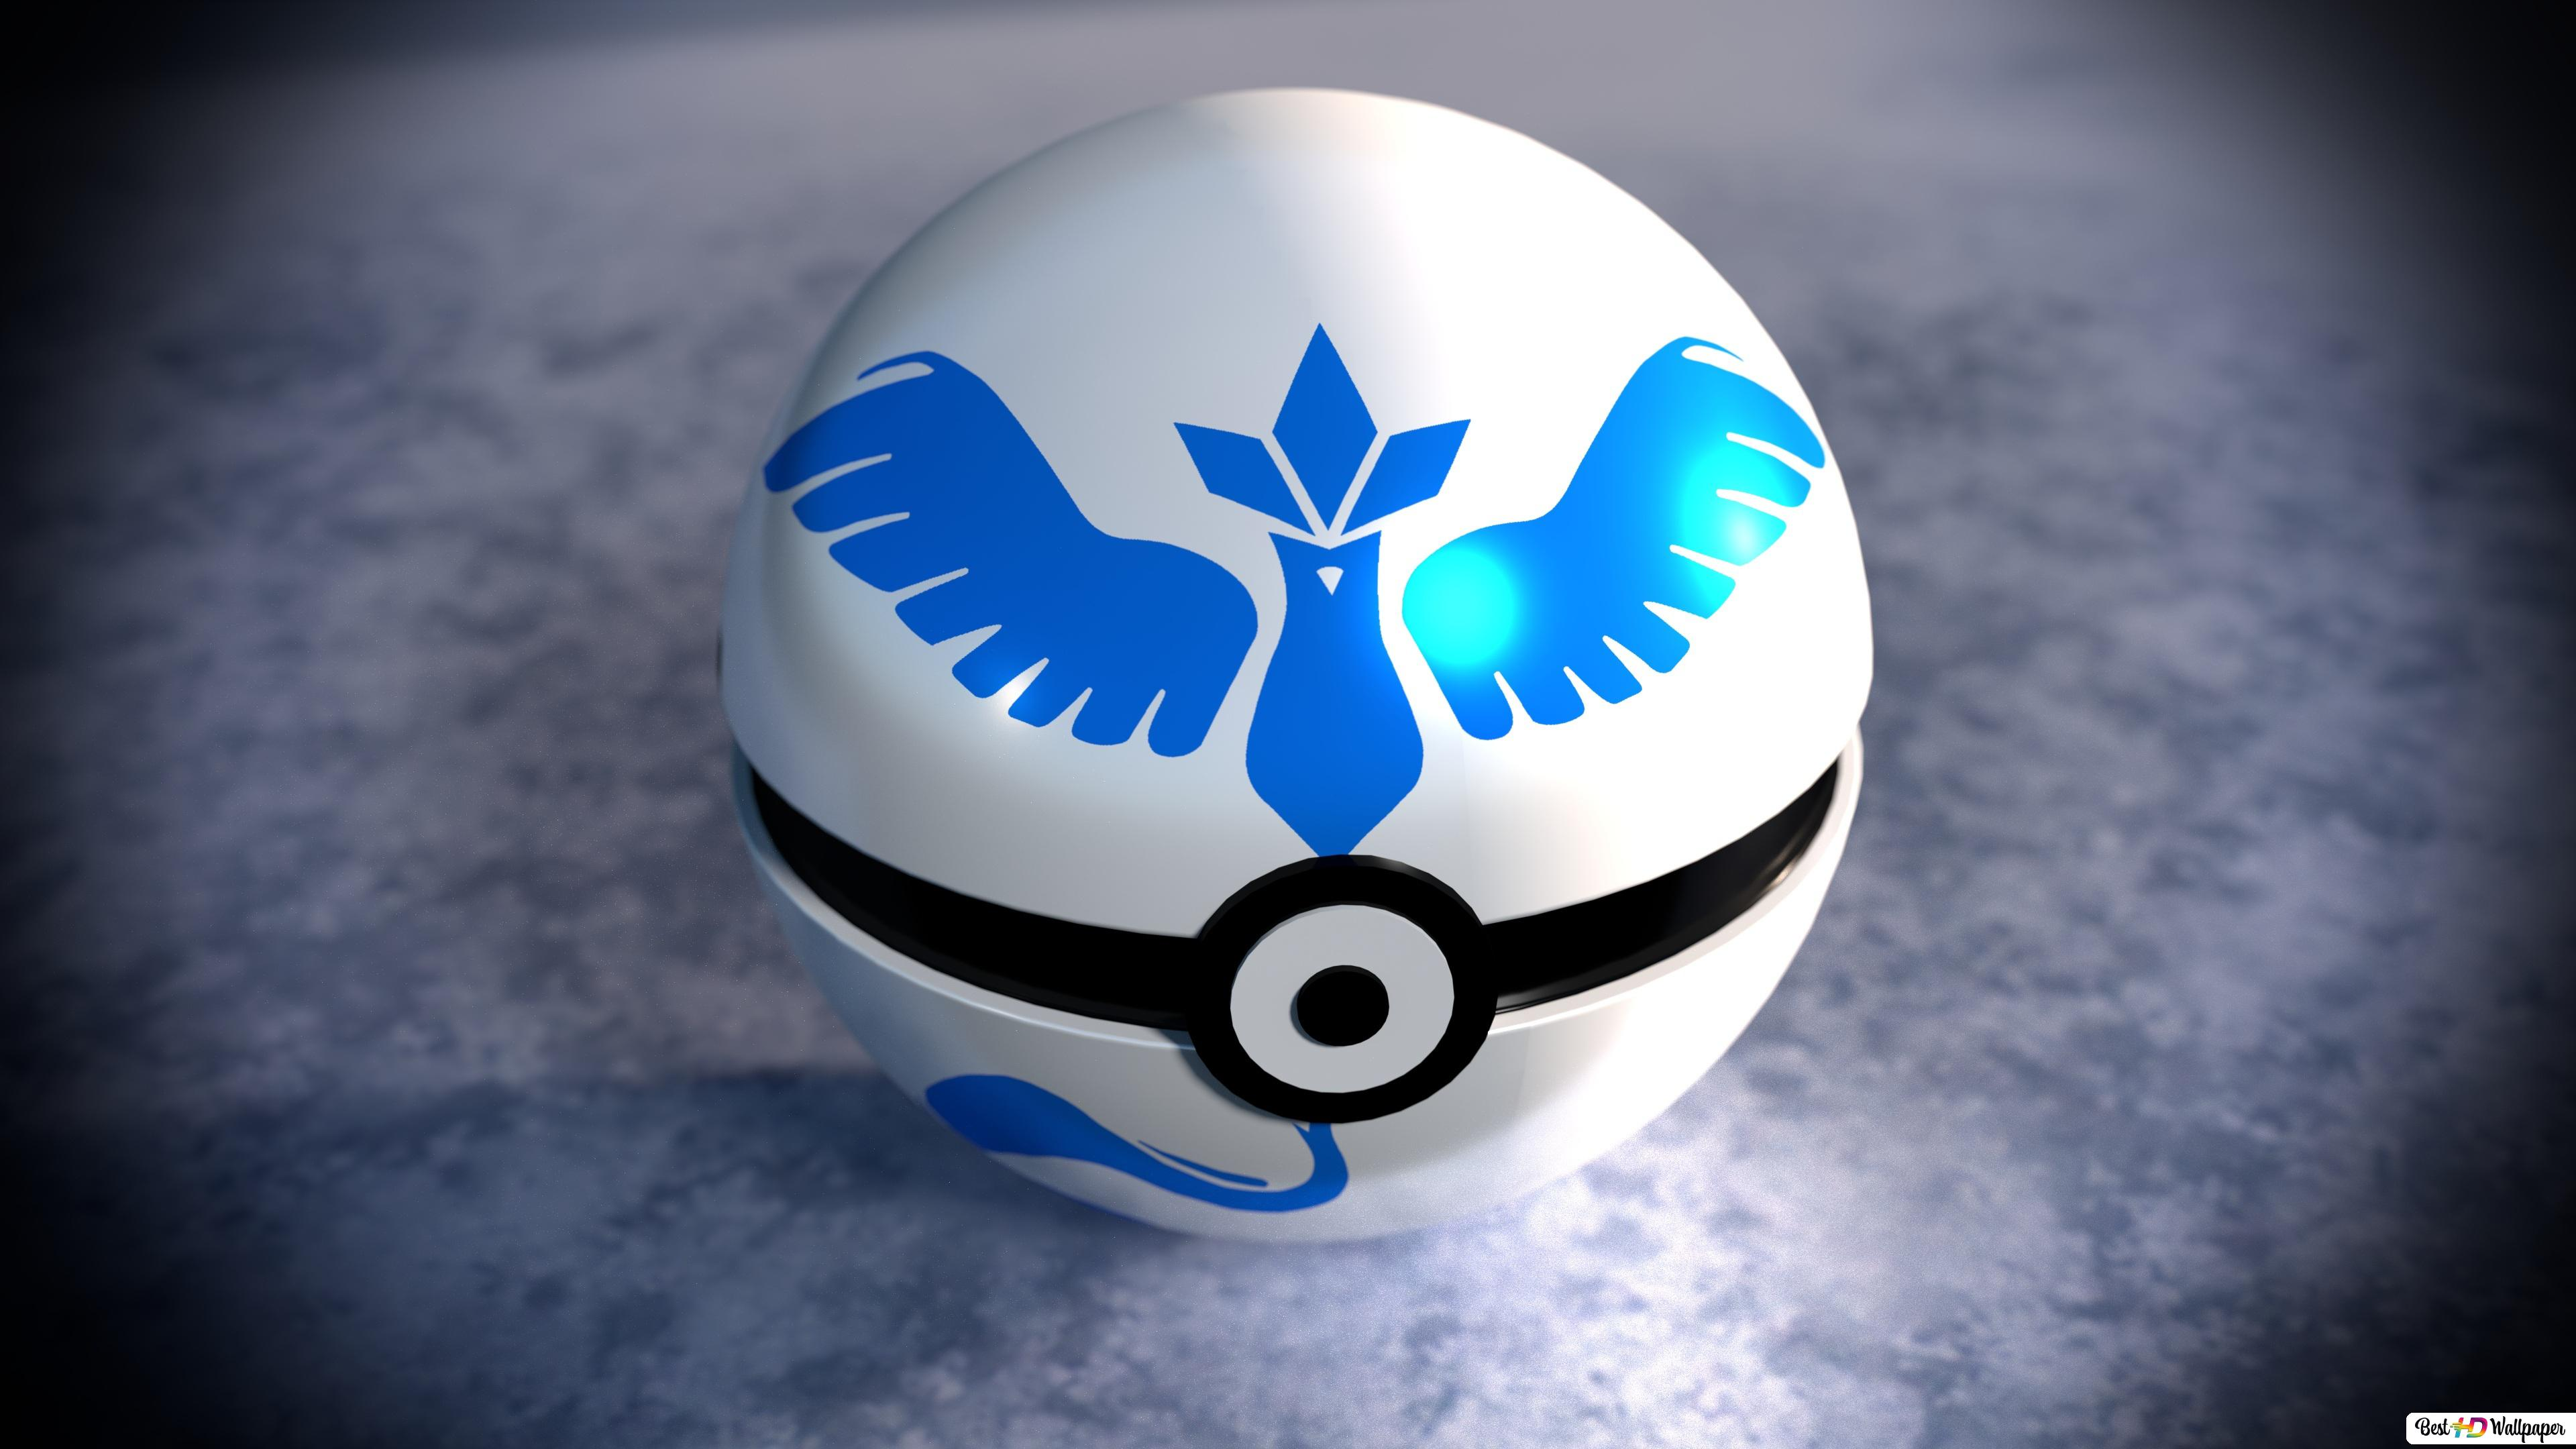 Pokemon Go Team Mystic Hd Wallpaper Download